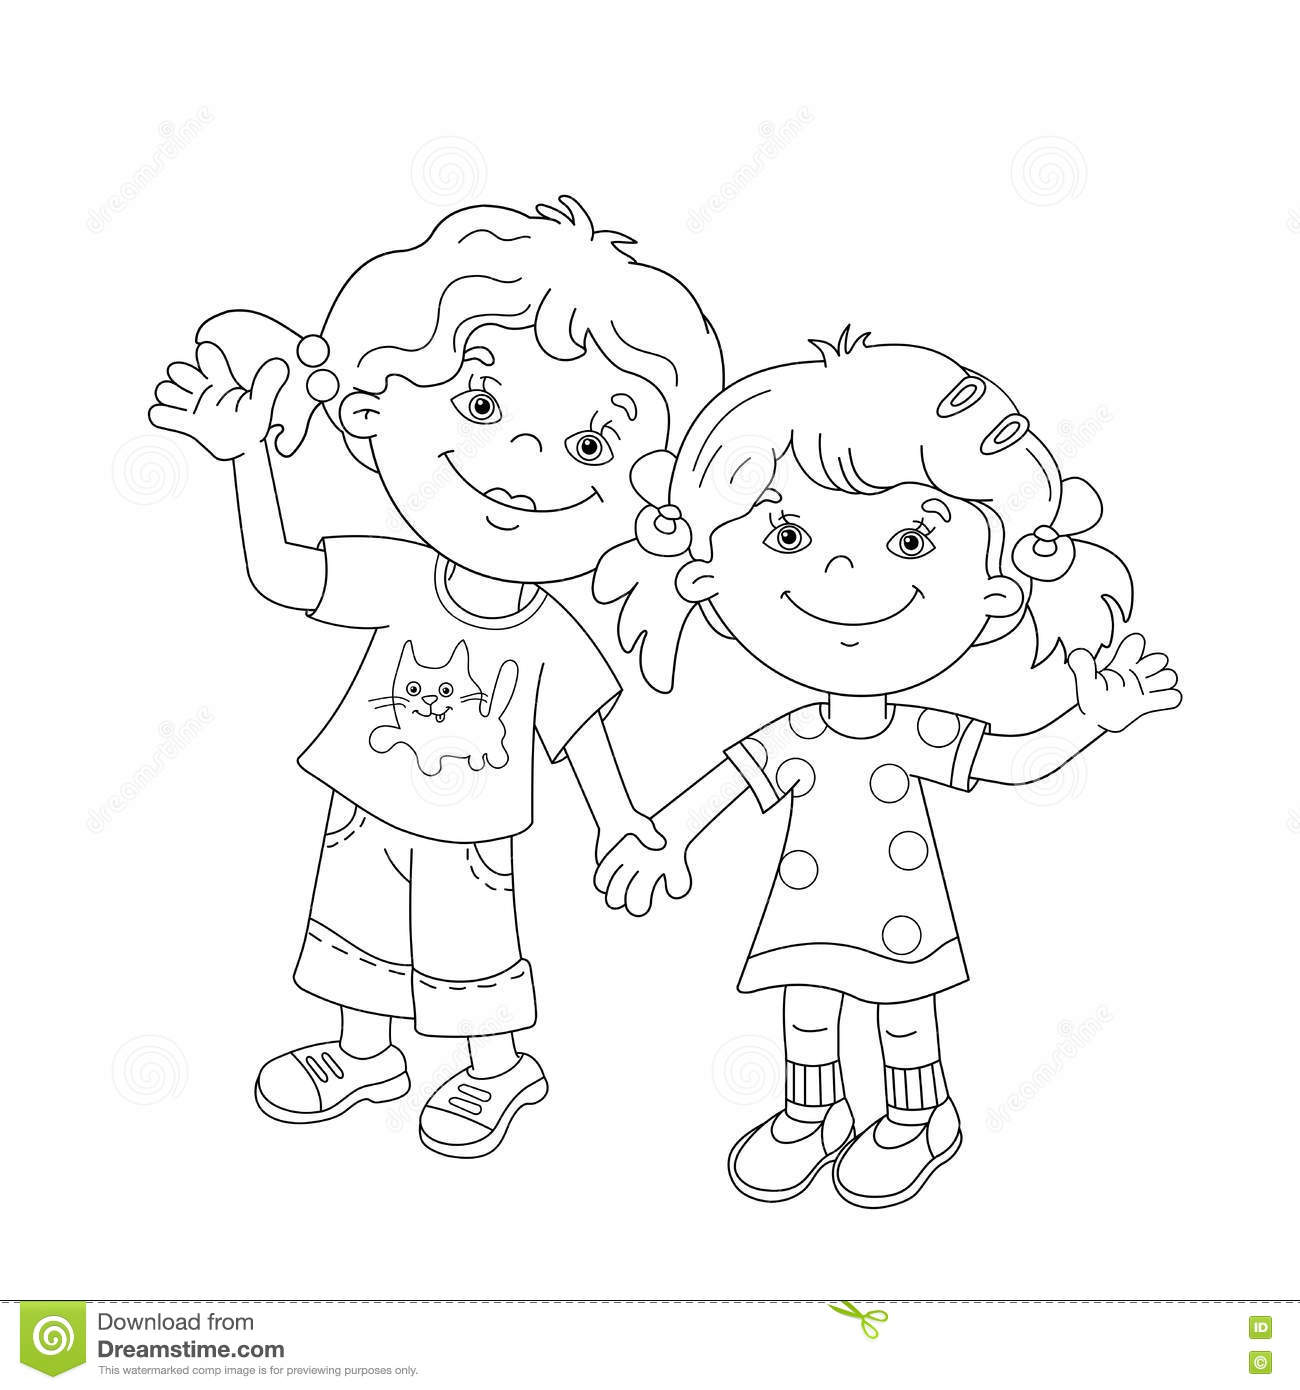 Coloring Page Outline Of Cartoon Girls Holding Hands Stock Vector